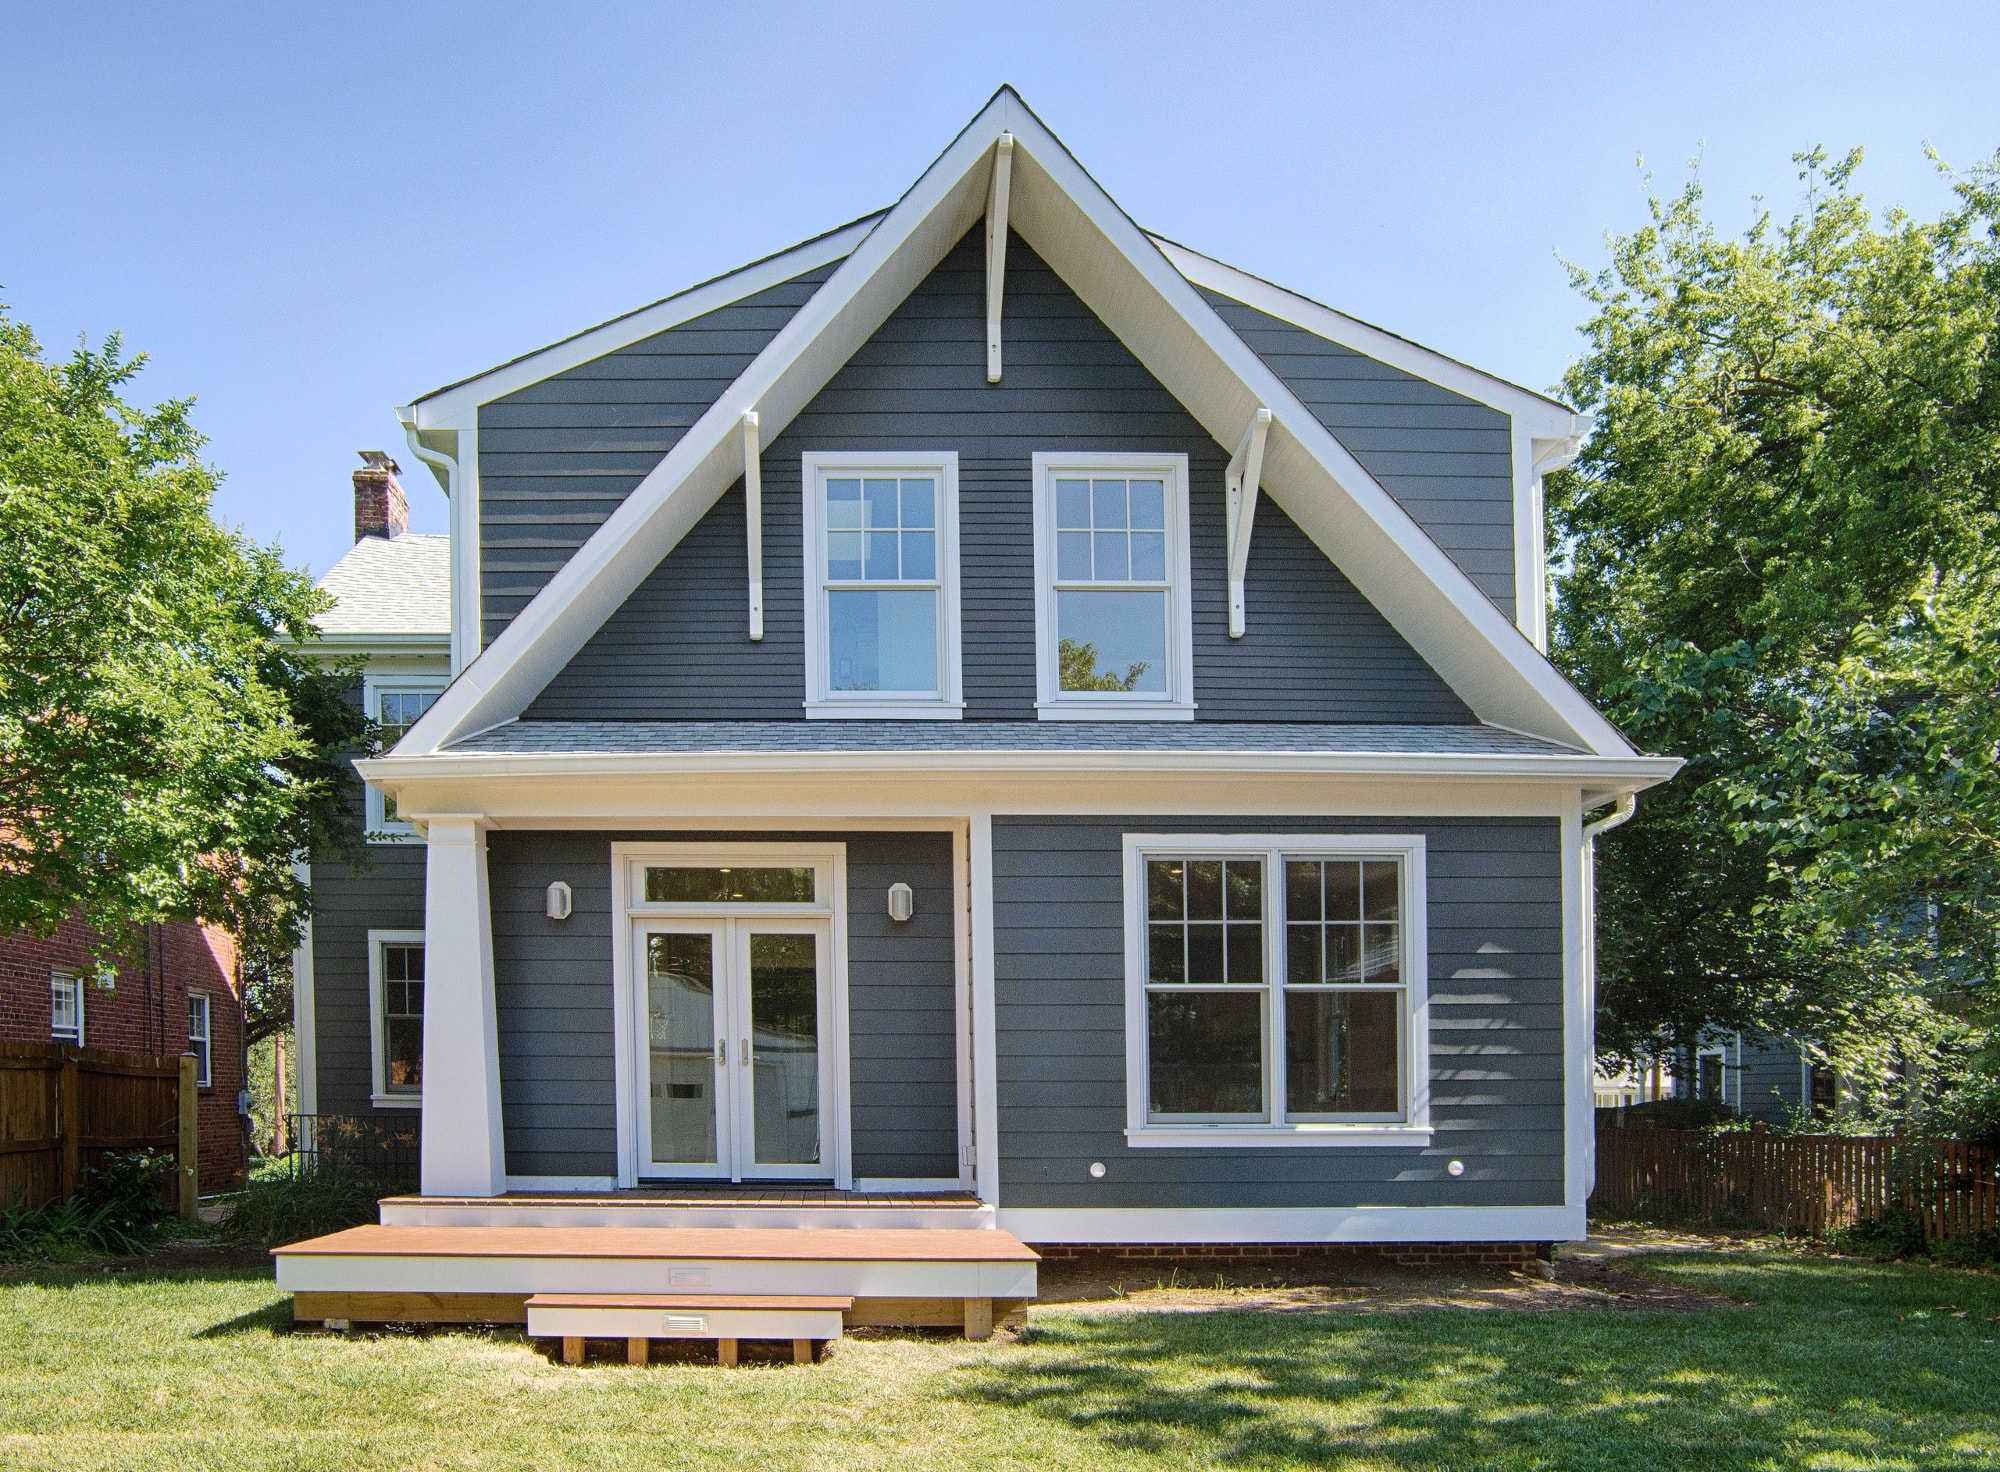 ADDITION - Are you looking for more space in your current home? We also design new front, rear, and side additions. If you are short on space, consider adding another storey to your bungalow.